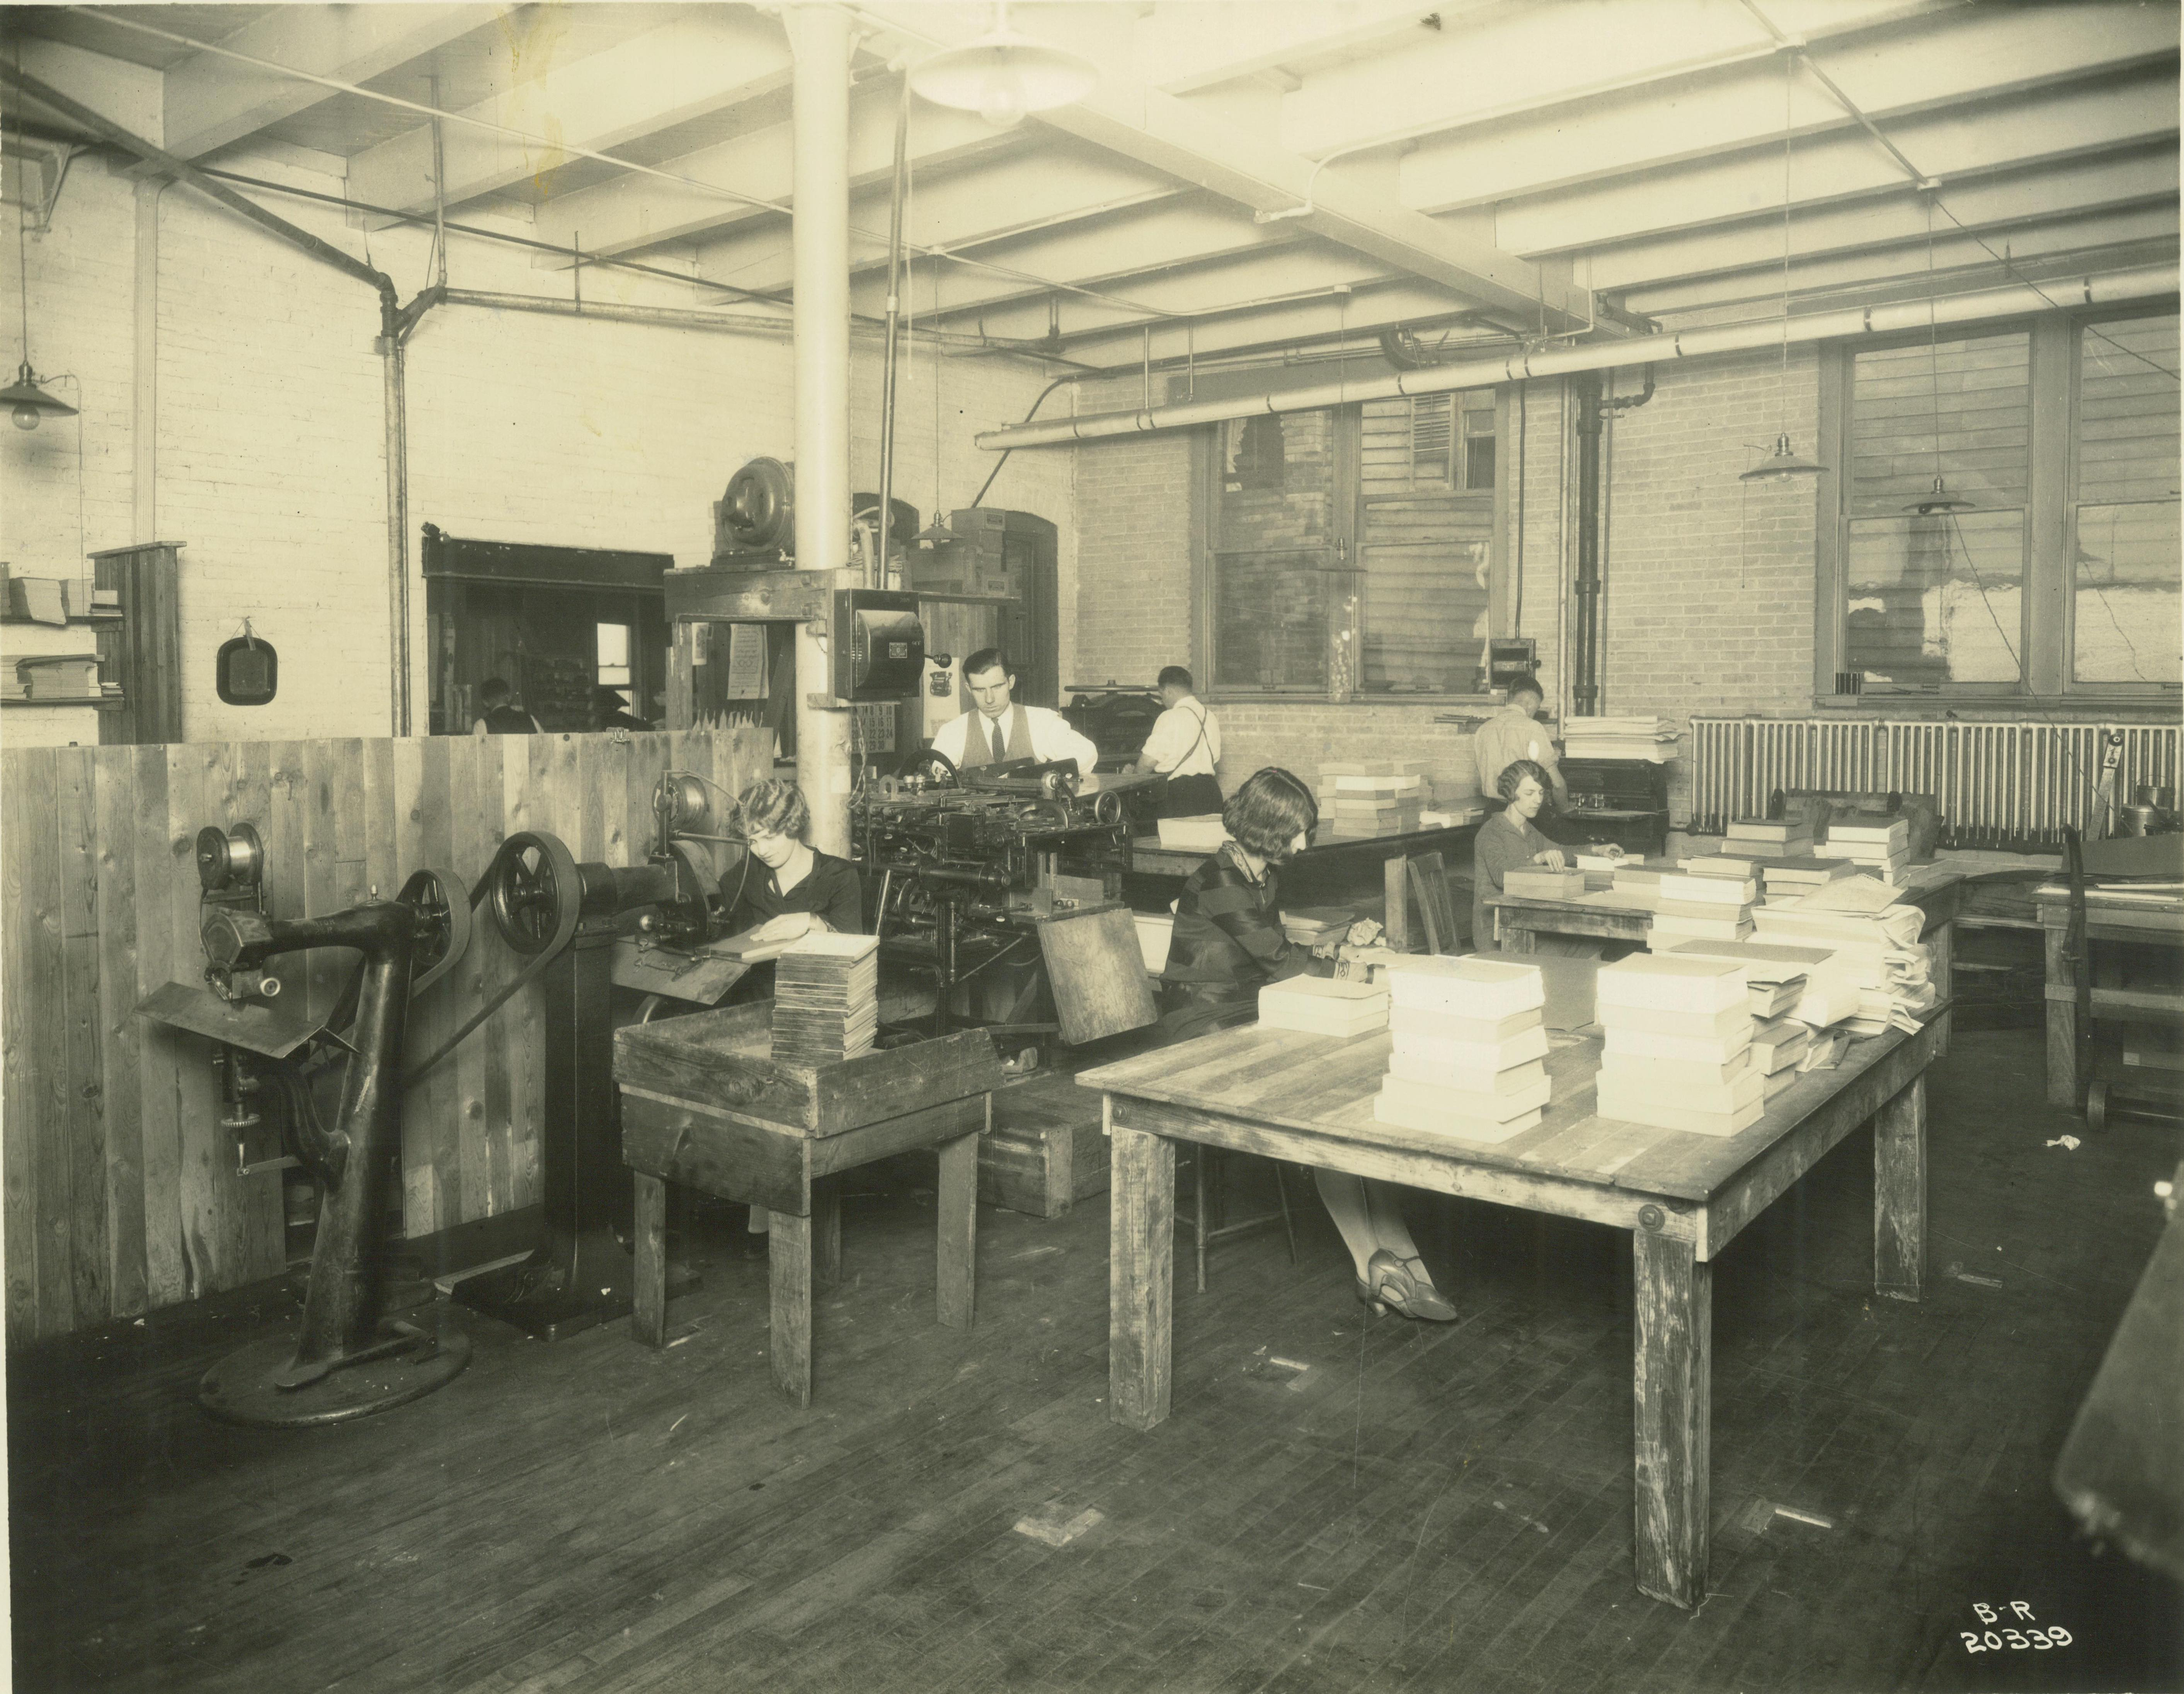 <table class=&quot;lightbox&quot;><tr><td colspan=2 class=&quot;lightbox-title&quot;>Krueger Printing Co. Book Binding</td></tr><tr><td colspan=2 class=&quot;lightbox-caption&quot;>A small group of men and women work to bind books for the Krueger Printing Company in the early part of the twentieth century. </td></tr><tr><td colspan=2 class=&quot;lightbox-spacer&quot;></td></tr><tr class=&quot;lightbox-detail&quot;><td class=&quot;cell-title&quot;>Source: </td><td class=&quot;cell-value&quot;>From the Historic Photo Collection of the Milwaukee Public Library. Reprinted with permission. <br /><a href=&quot;http://content.mpl.org/cdm/singleitem/collection/HstoricPho/id/4084/rec/9&quot; target=&quot;_blank&quot;>Milwaukee Public Library</a></td></tr><tr class=&quot;filler-row&quot;><td colspan=2>&nbsp;</td></tr></table>